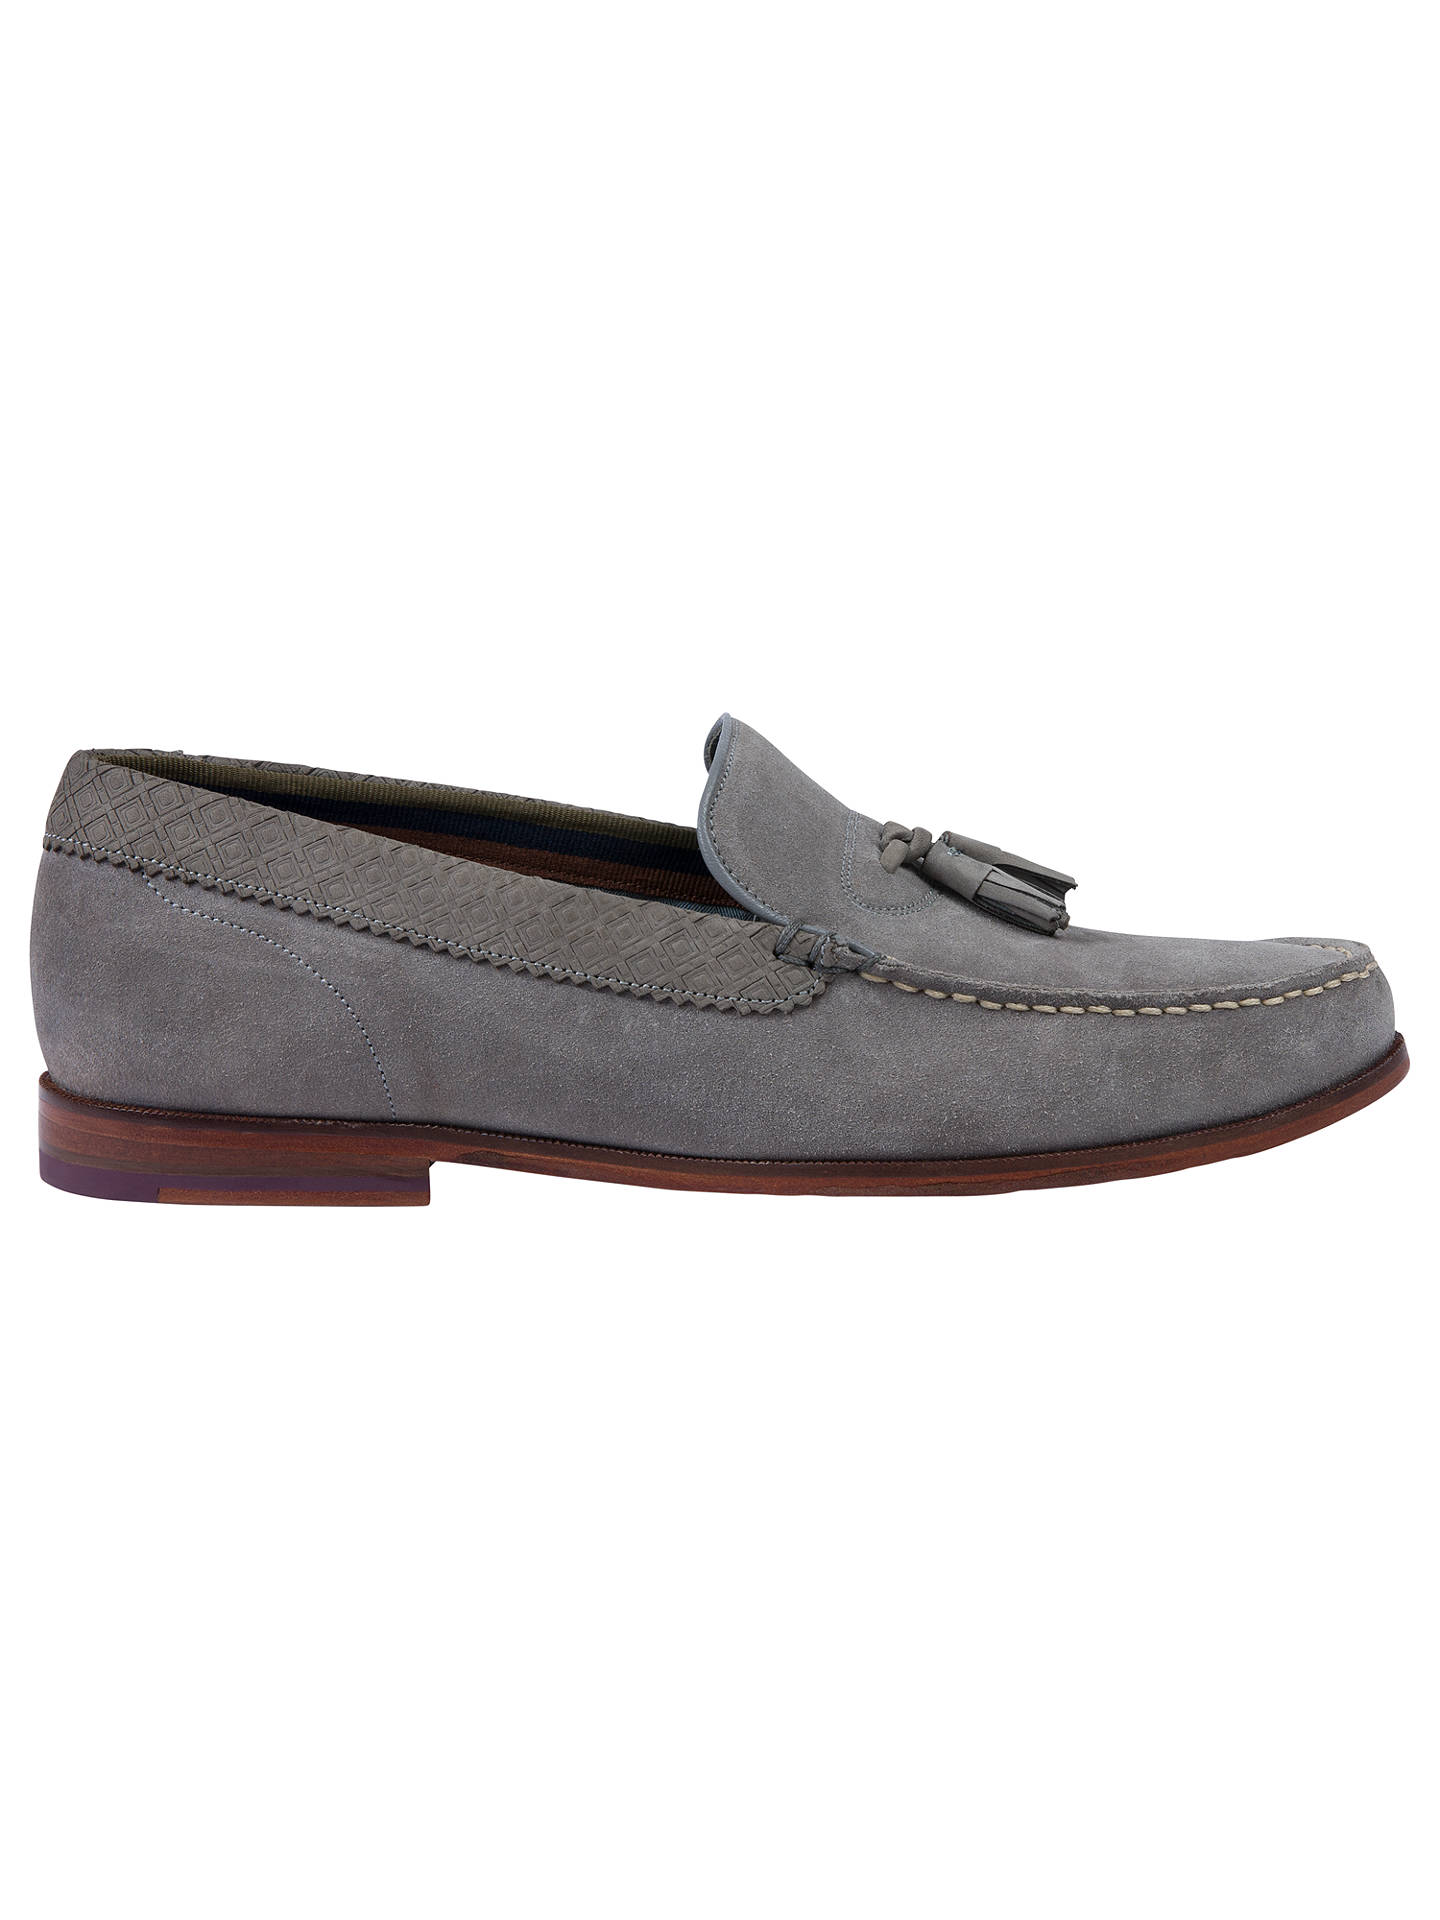 2ed192900fe Ted Baker Dougge Suede Tassel Loafers at John Lewis   Partners